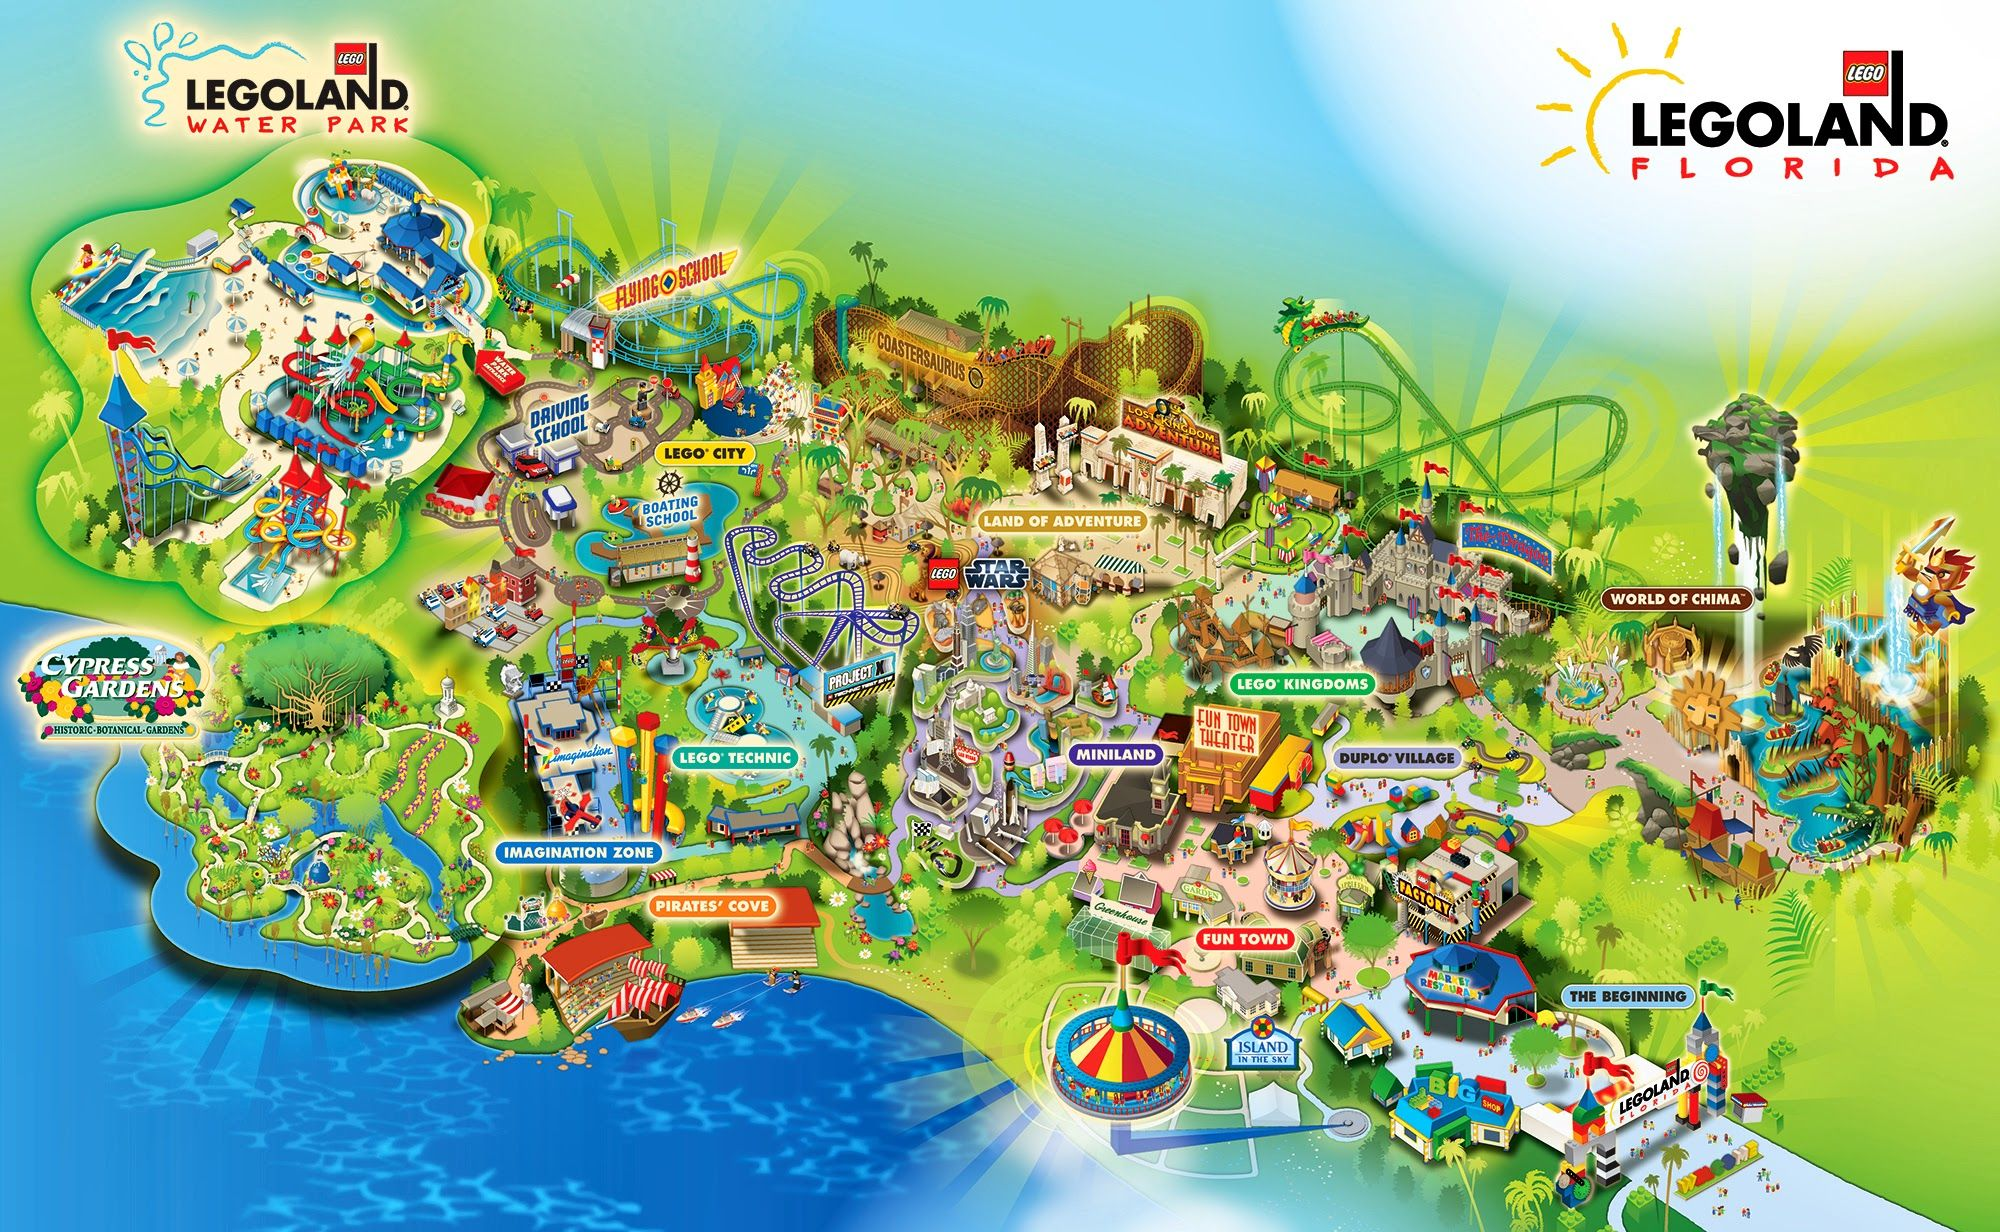 Llf245 park map 2013 2000 1232 orlando for Winter vacations in florida